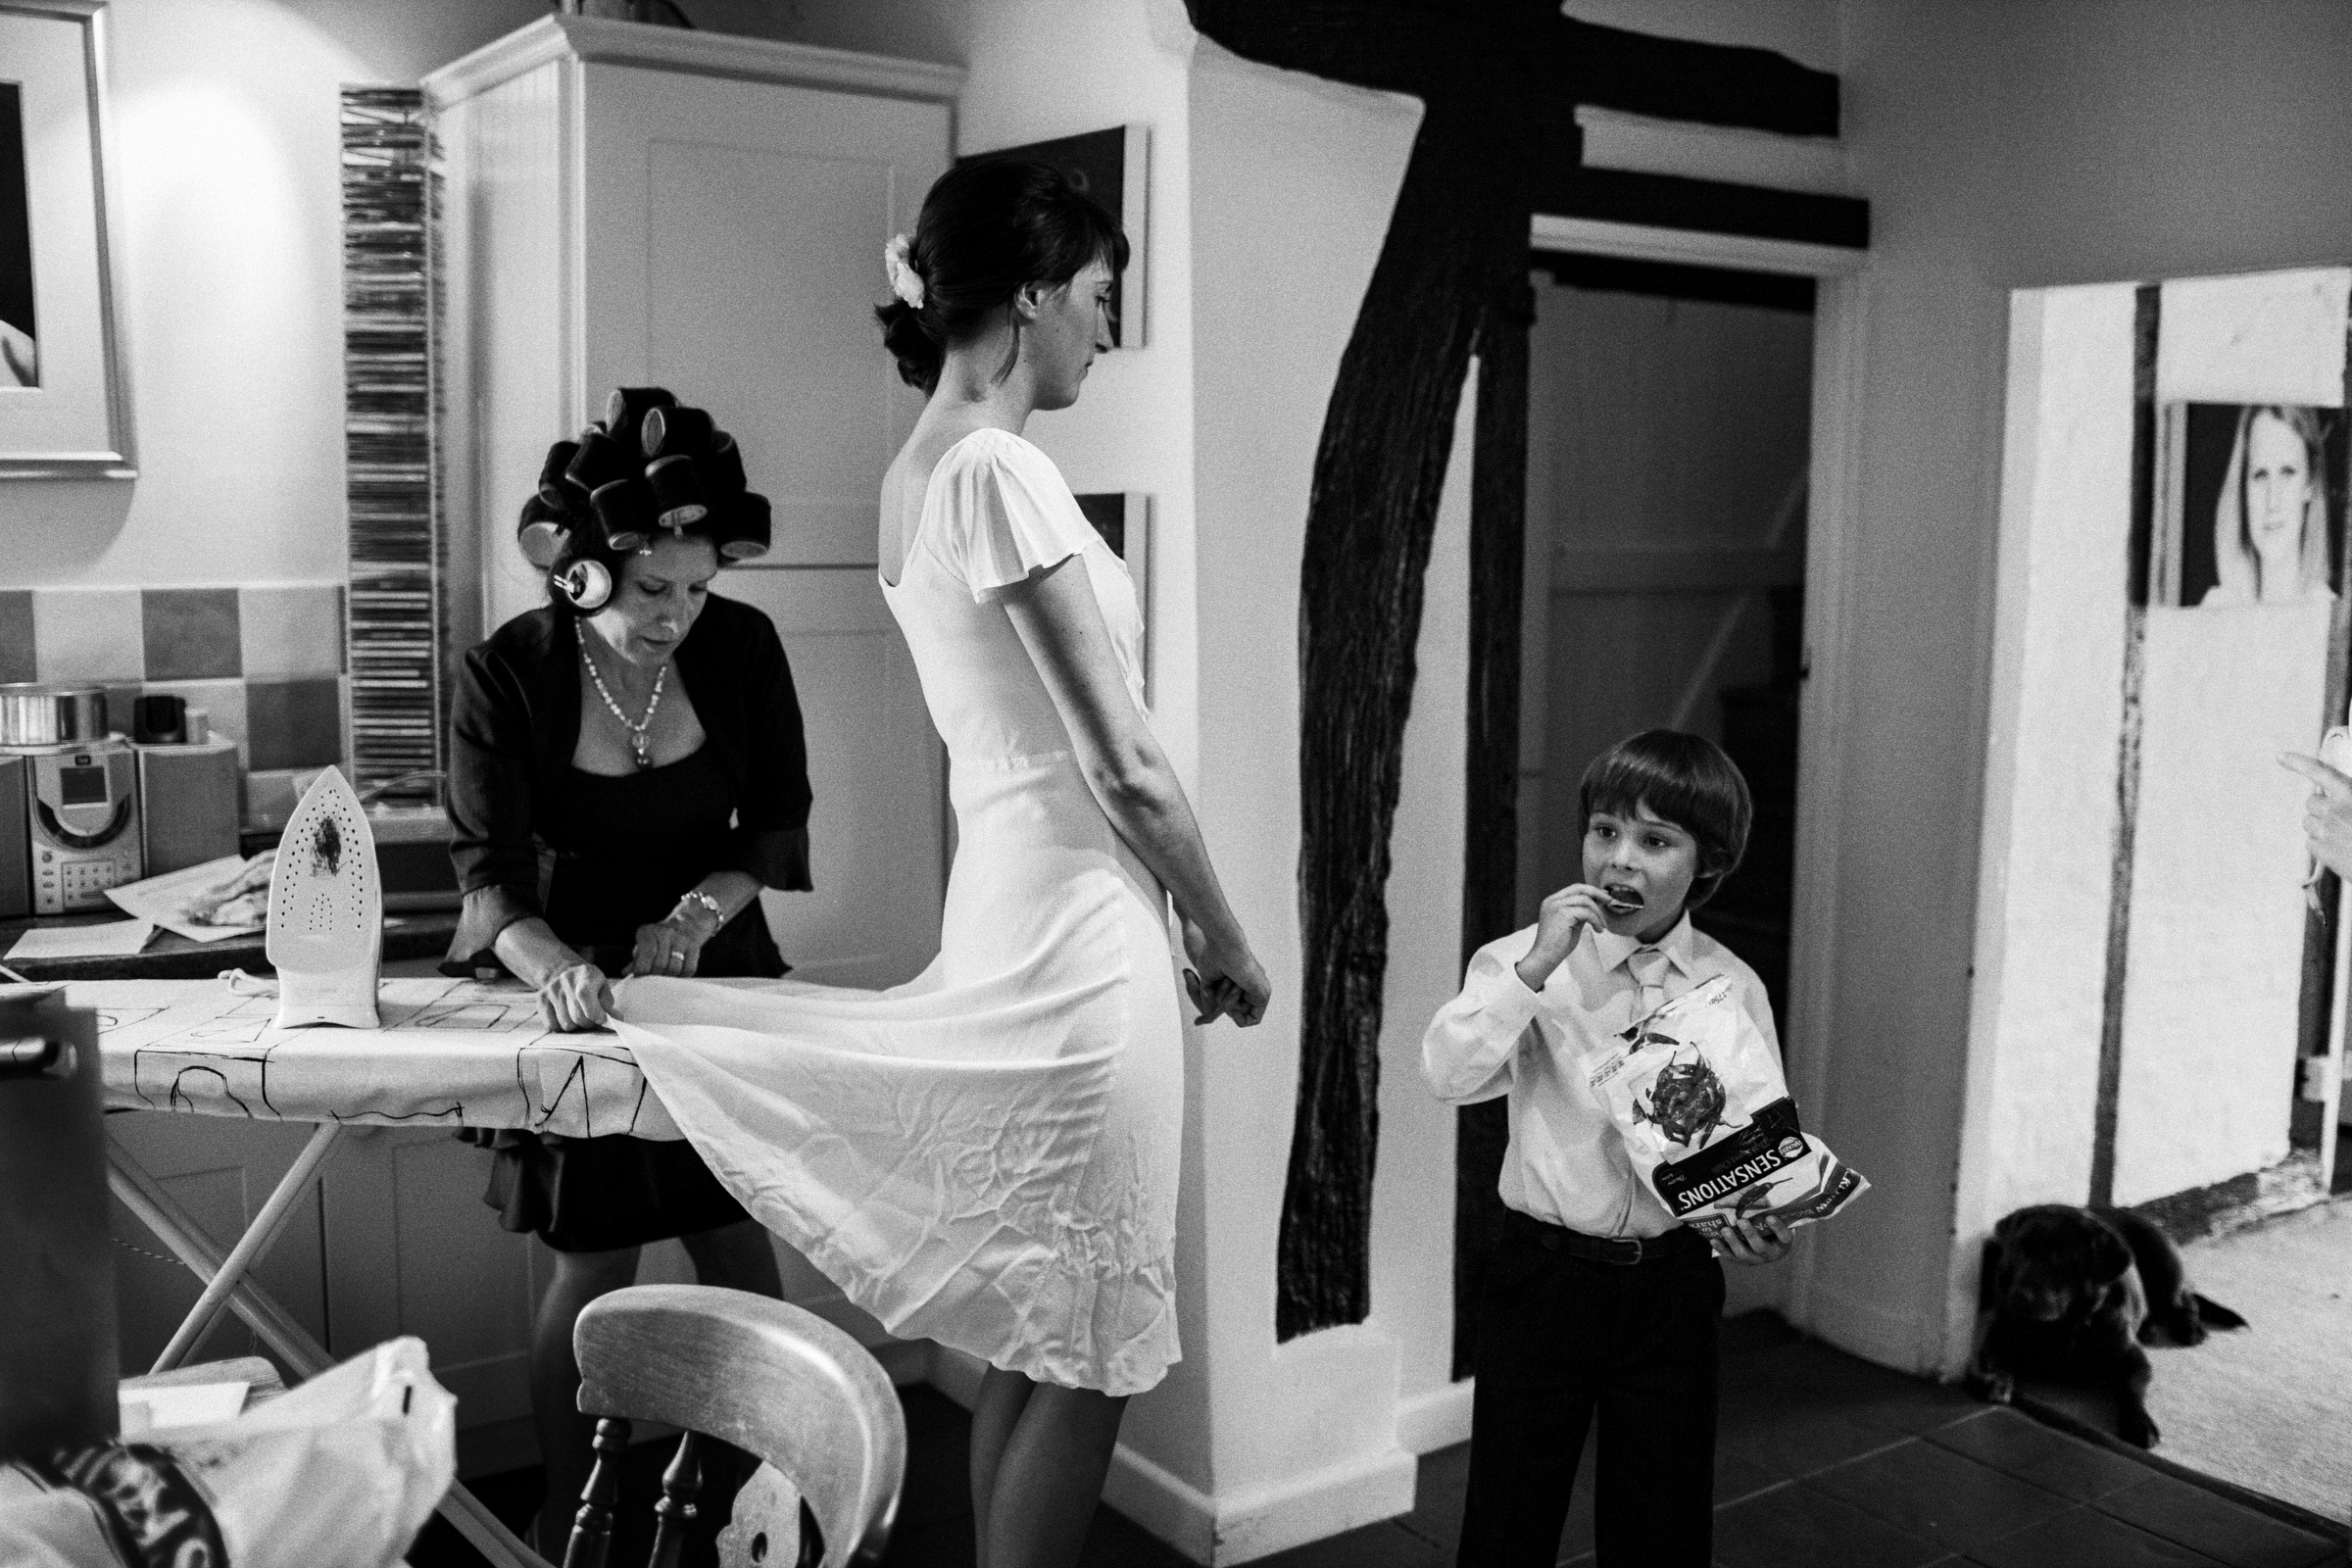 Mother irons brides dress while she wears it - documentary photo by Jeff Ascough, London